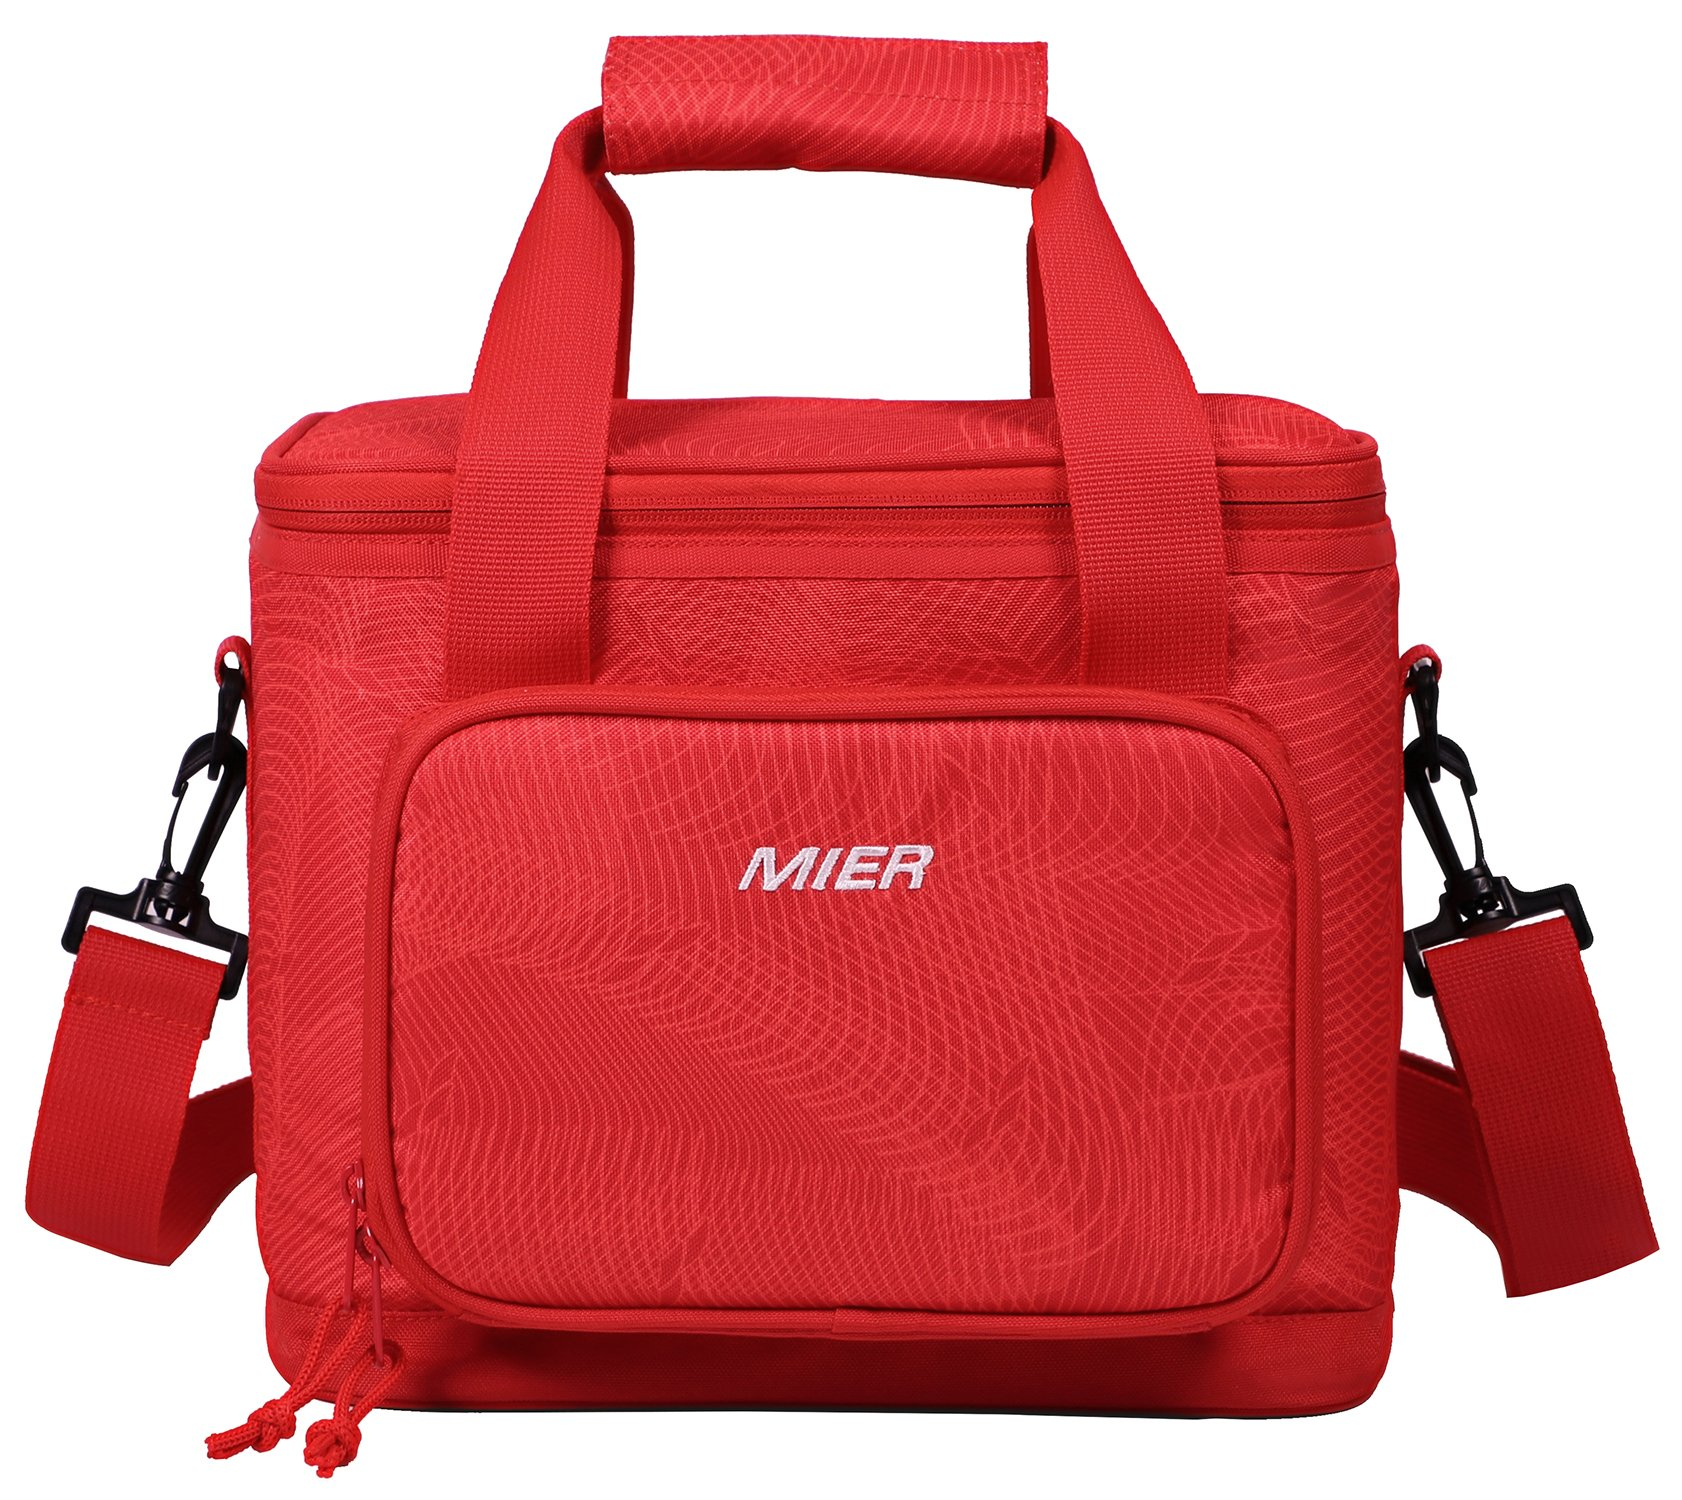 MIER 16 Can Large Insulated Lunch Bag for Women, Soft Leakproof Liner, Red